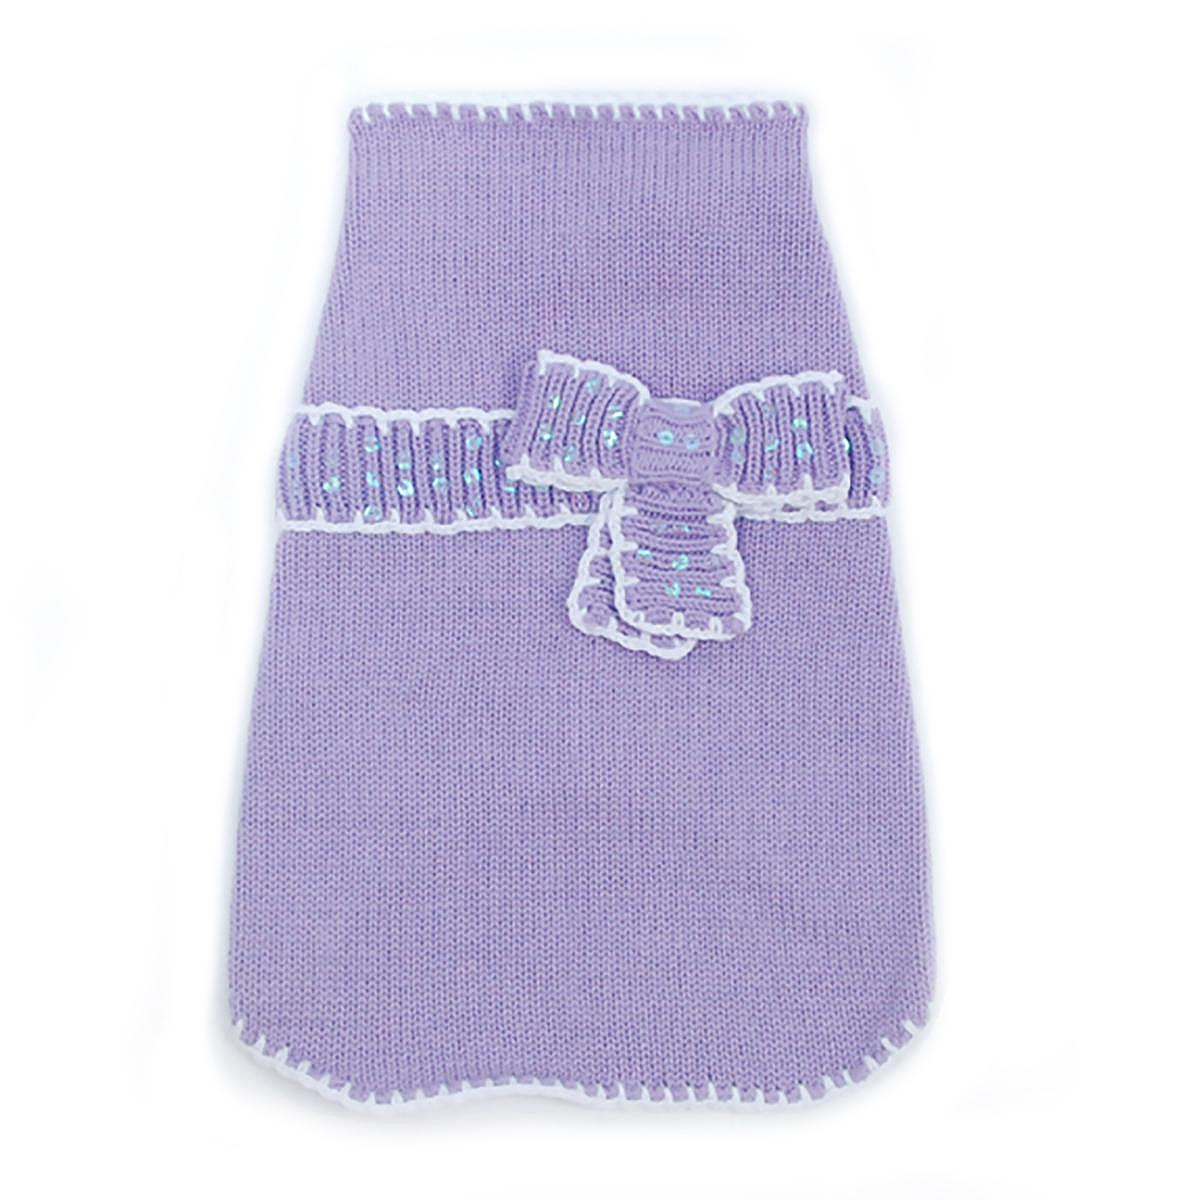 Take A Bow Dog Sweater by Oscar Newman - Violet